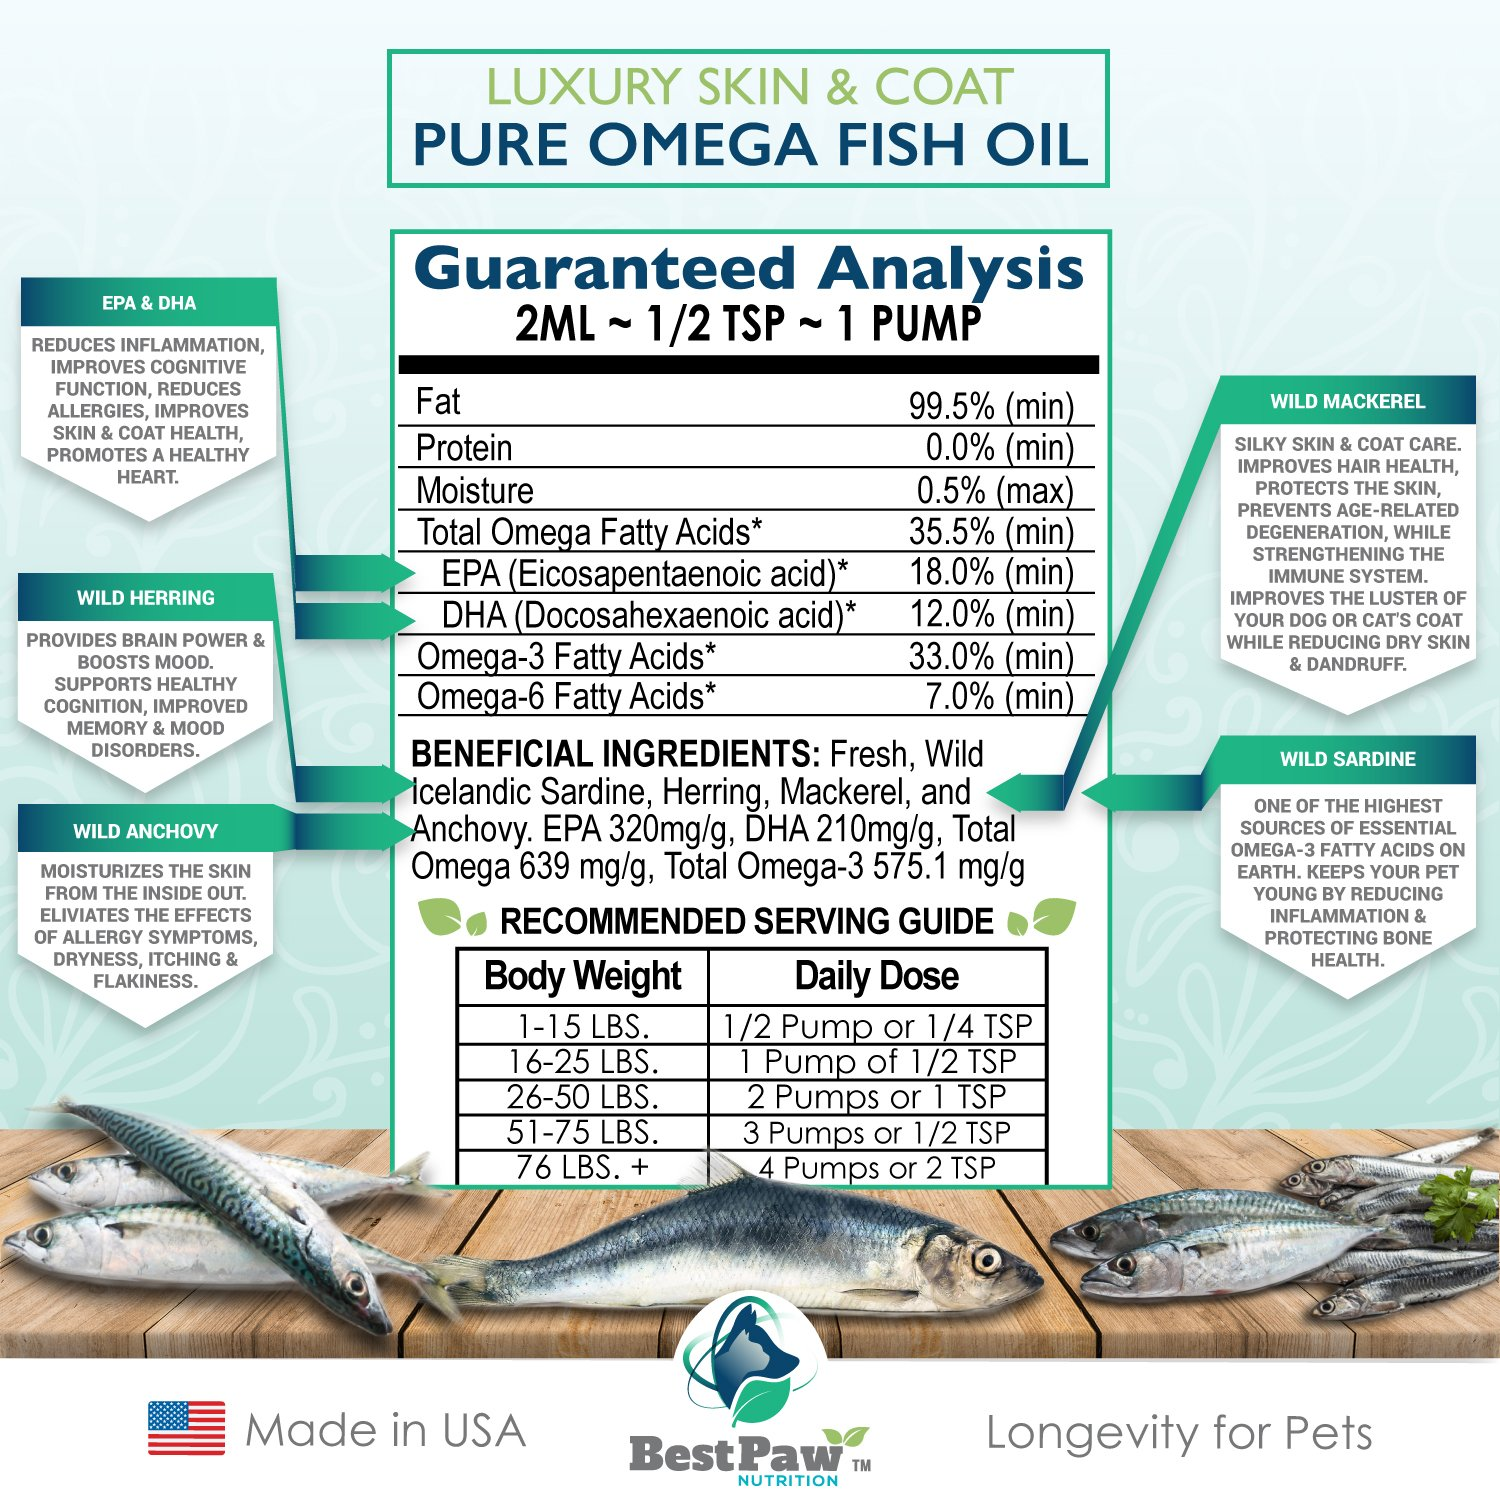 Fish Oil Omega 3 for Dogs, Cats, and Horses, Salmon Oil Food Supplement for Pets, Wild Alaskan 100% All Natural, Helps Dry Skin, Allergies, and Joints, Promotes Healthy Coat, Helps Inflammation, 8 oz by Pure Paw Nutrition (Image #5)